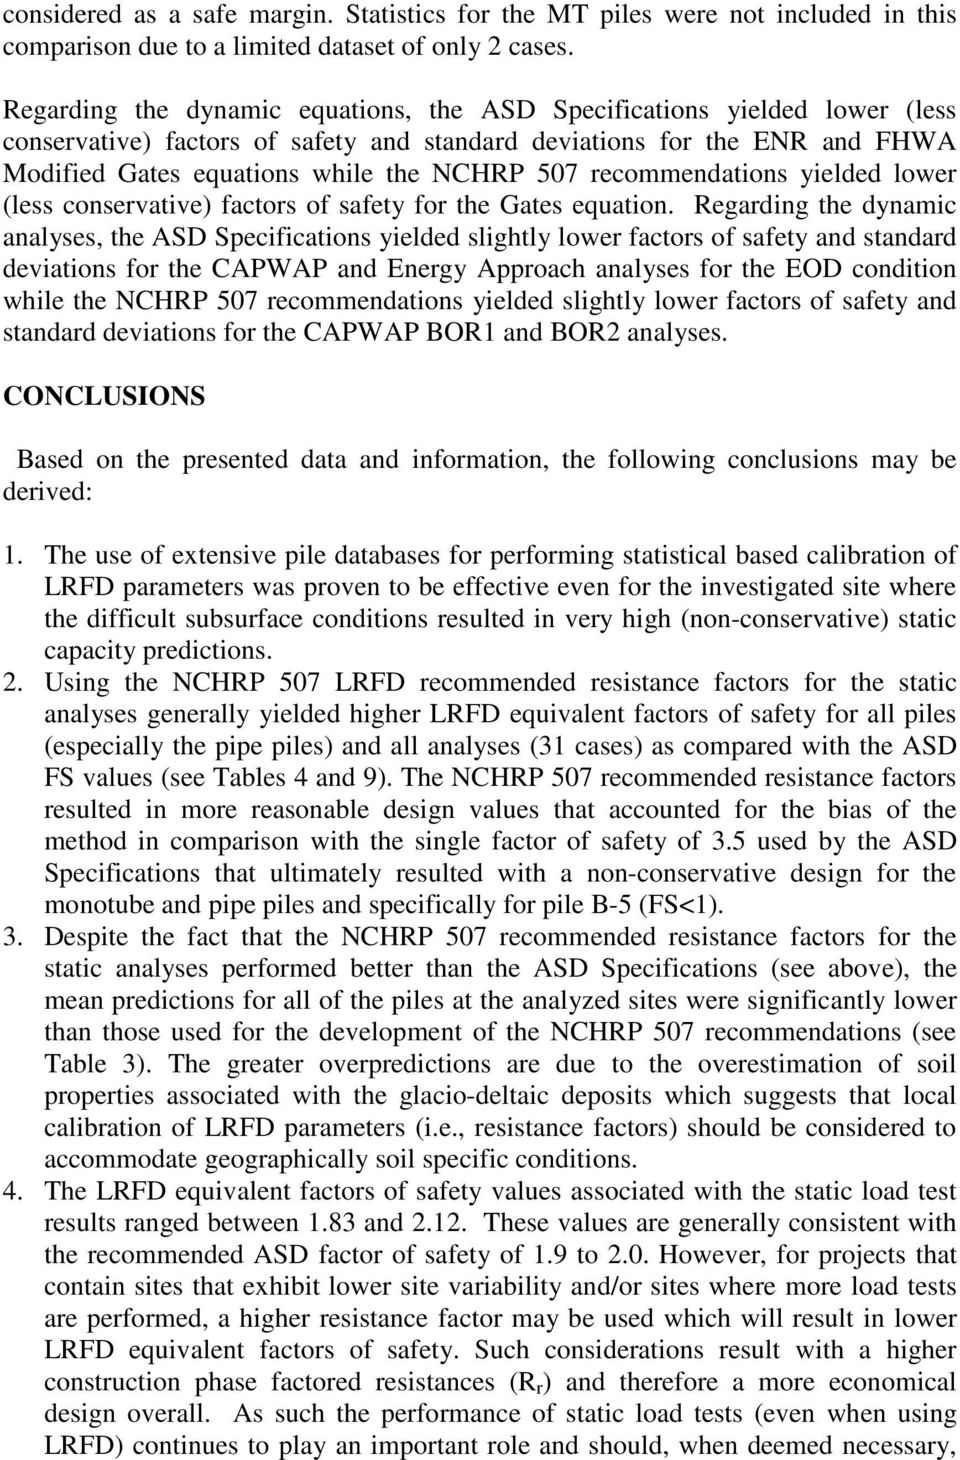 recommendations yielded lower (less conservative) factors of safety for the Gates equation.